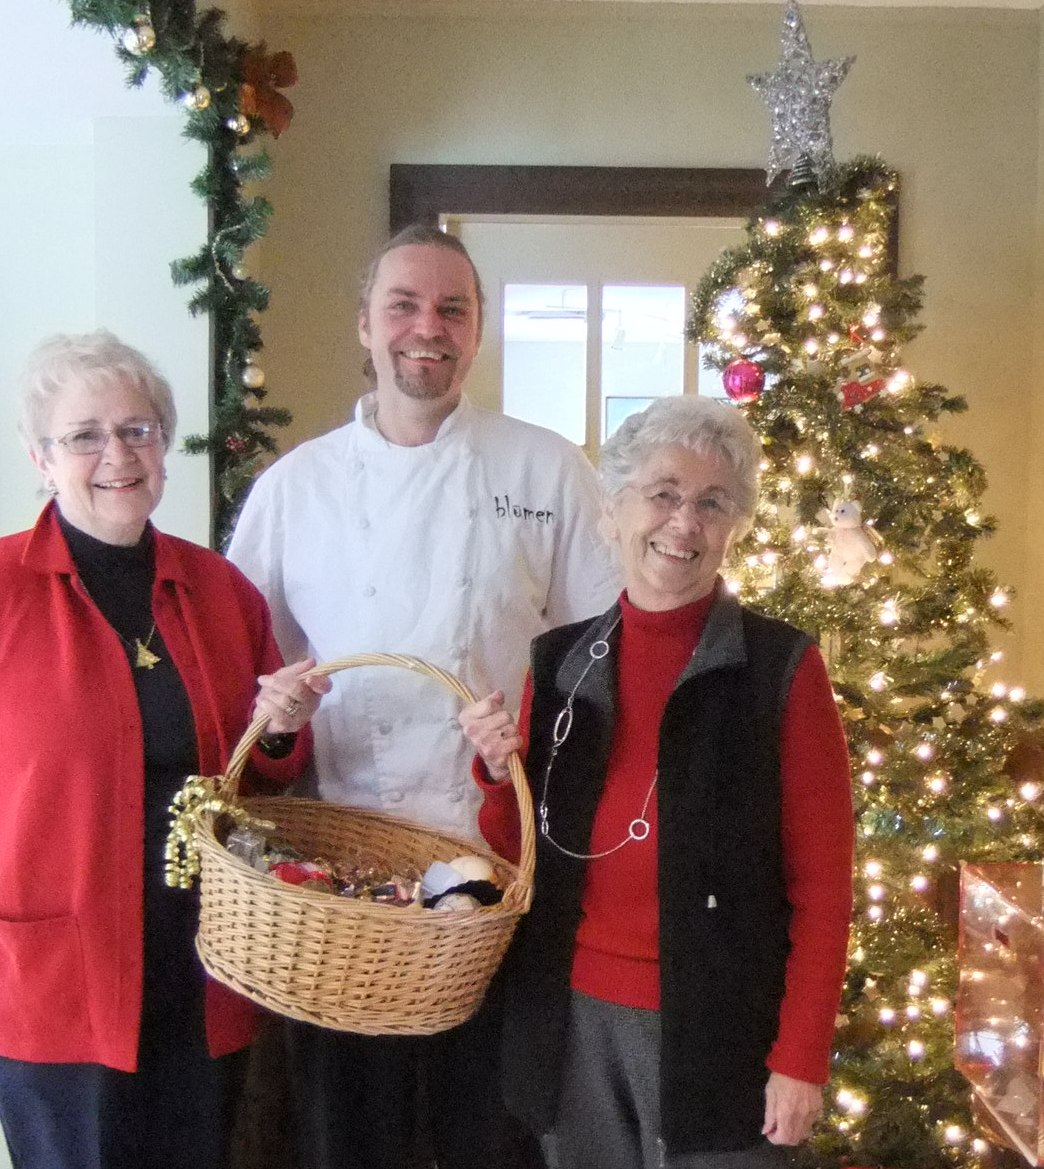 L-R Maureen Finnegan, Andreas Feller, and Edith Morash prepare Community Care's Christmas Memory Tree at Blumen Garden Bistro.